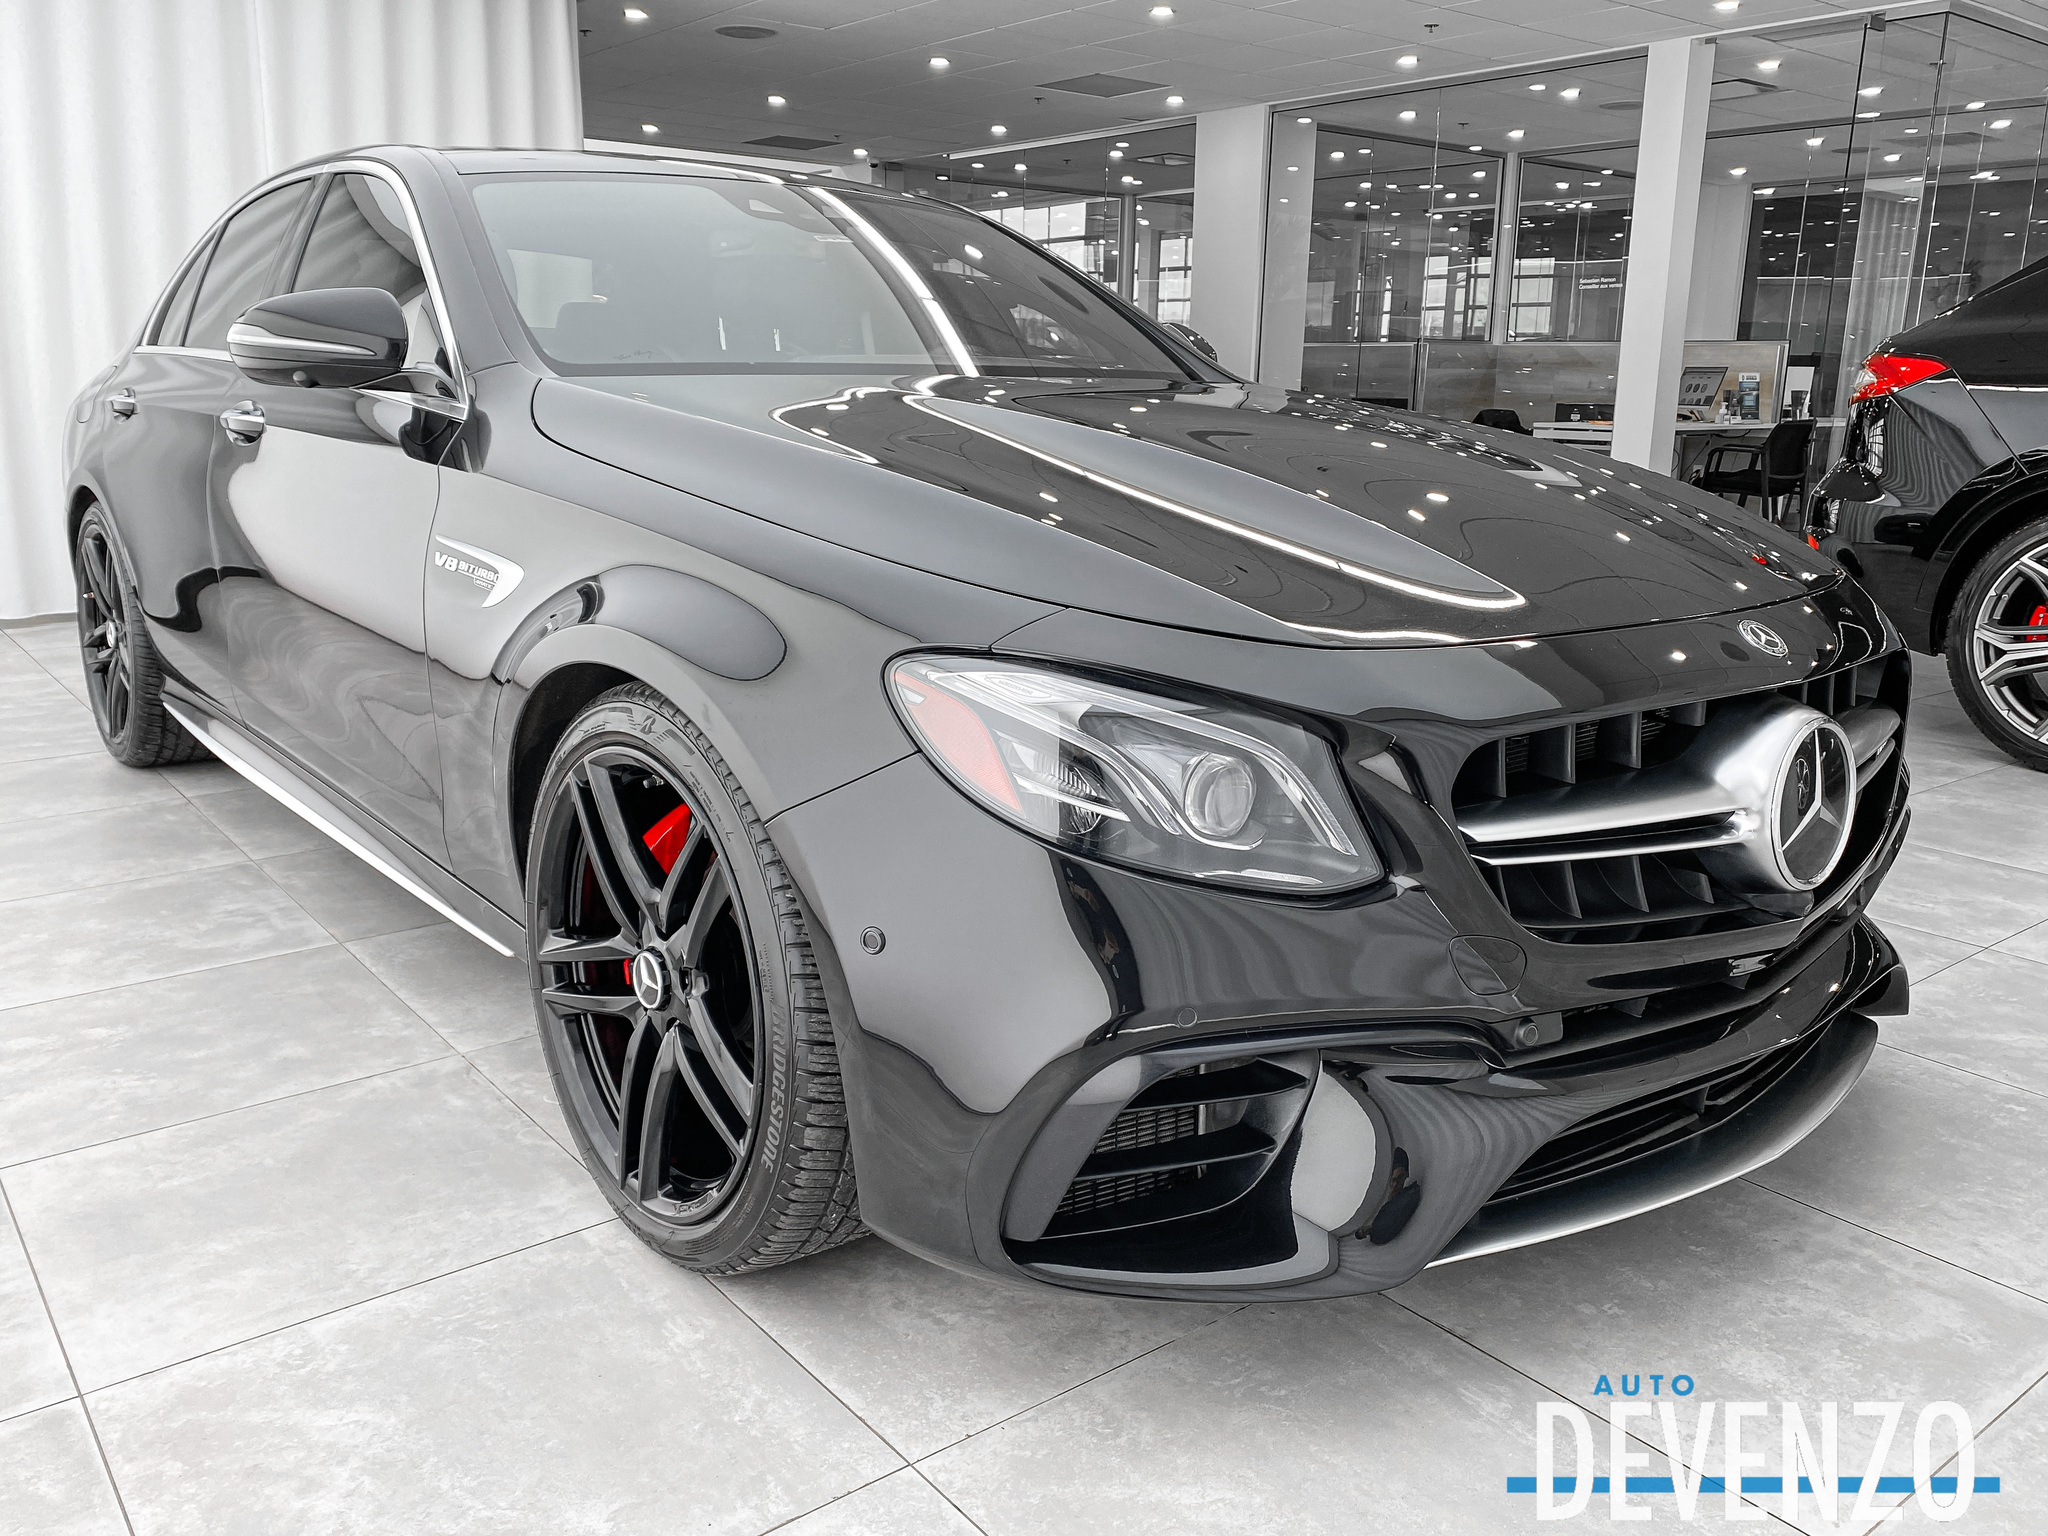 2018 Mercedes-Benz E-Class AMG E63 S 4MATIC+ 603HP INTELLIGENT DRIVE complet